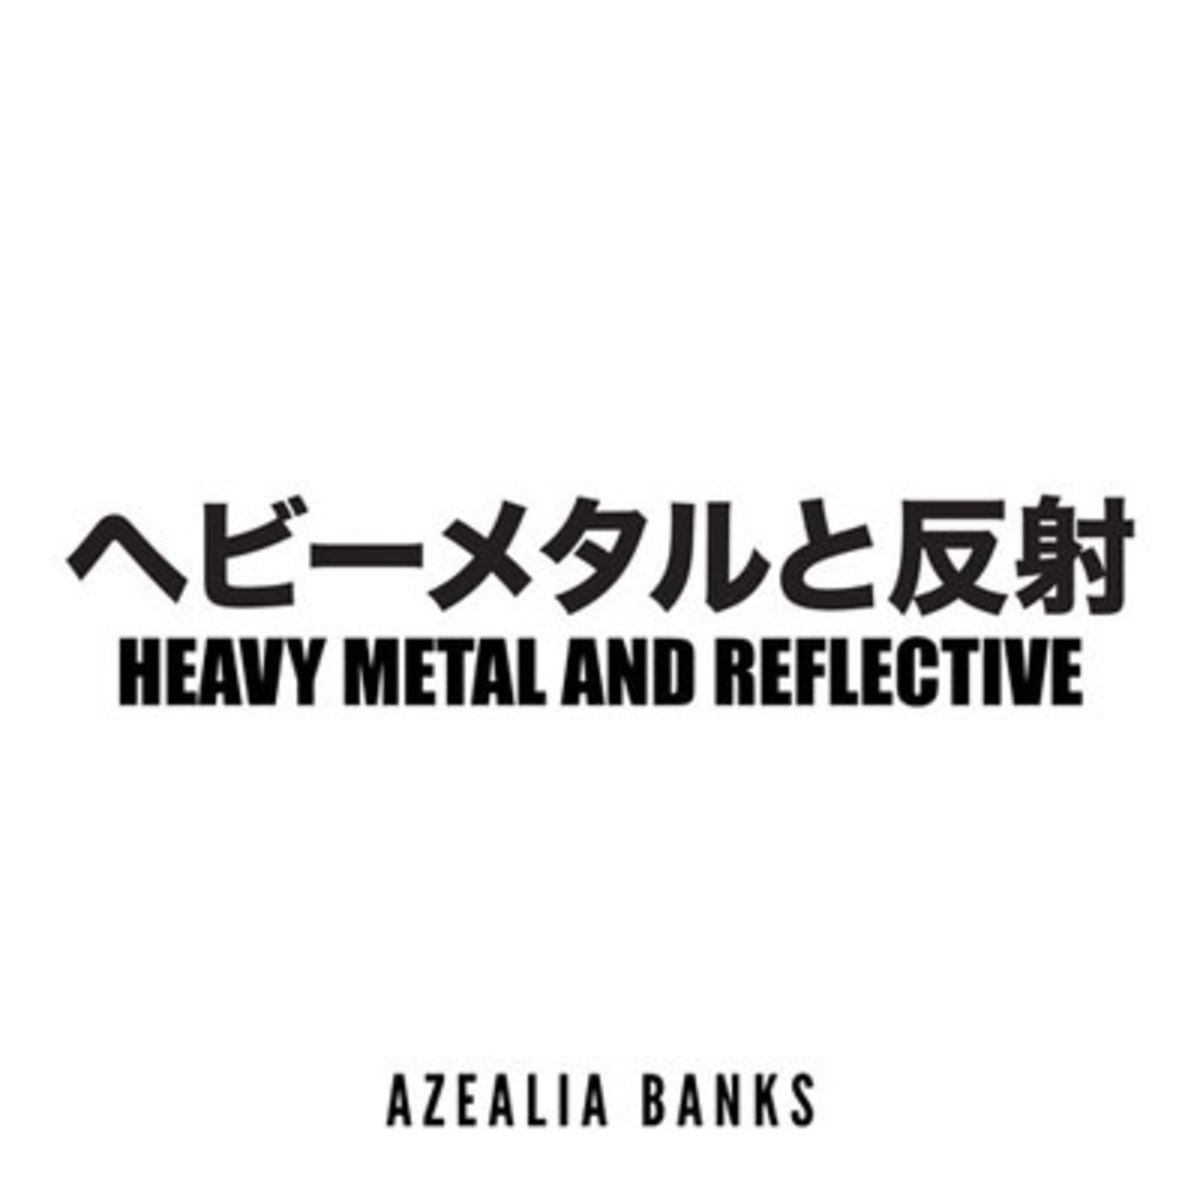 azeliabanks-hvymetal.jpg